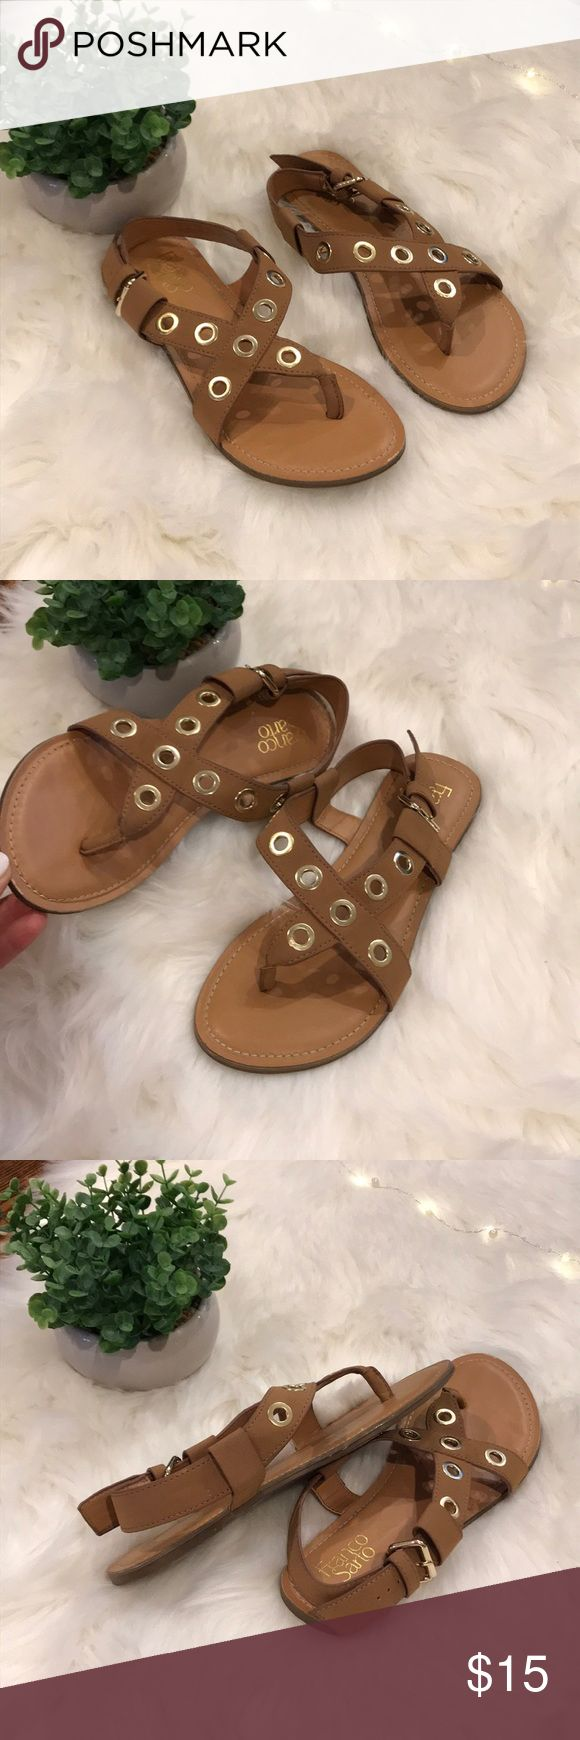 Franco Sarto Sandals Super cute sandals worn once. Tan Franco Sarto thongs with gold detail. The straps are asymmetrical and leave the inside of the foot more exposed. Size 8M Franco Sarto Shoes Sandals